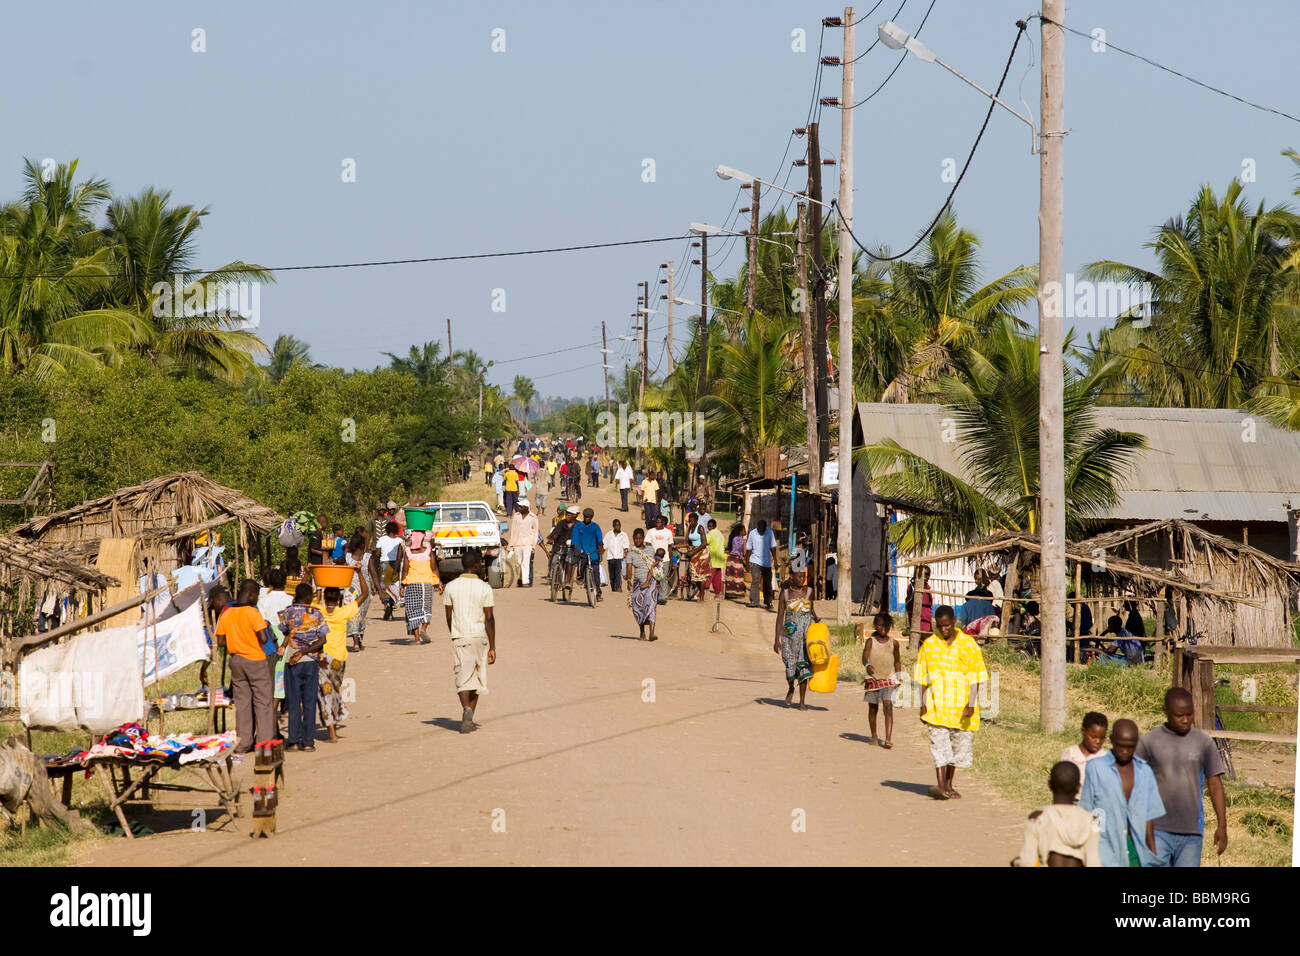 Busy village road on the outskirts of Quelimane Mozambique - Stock Image